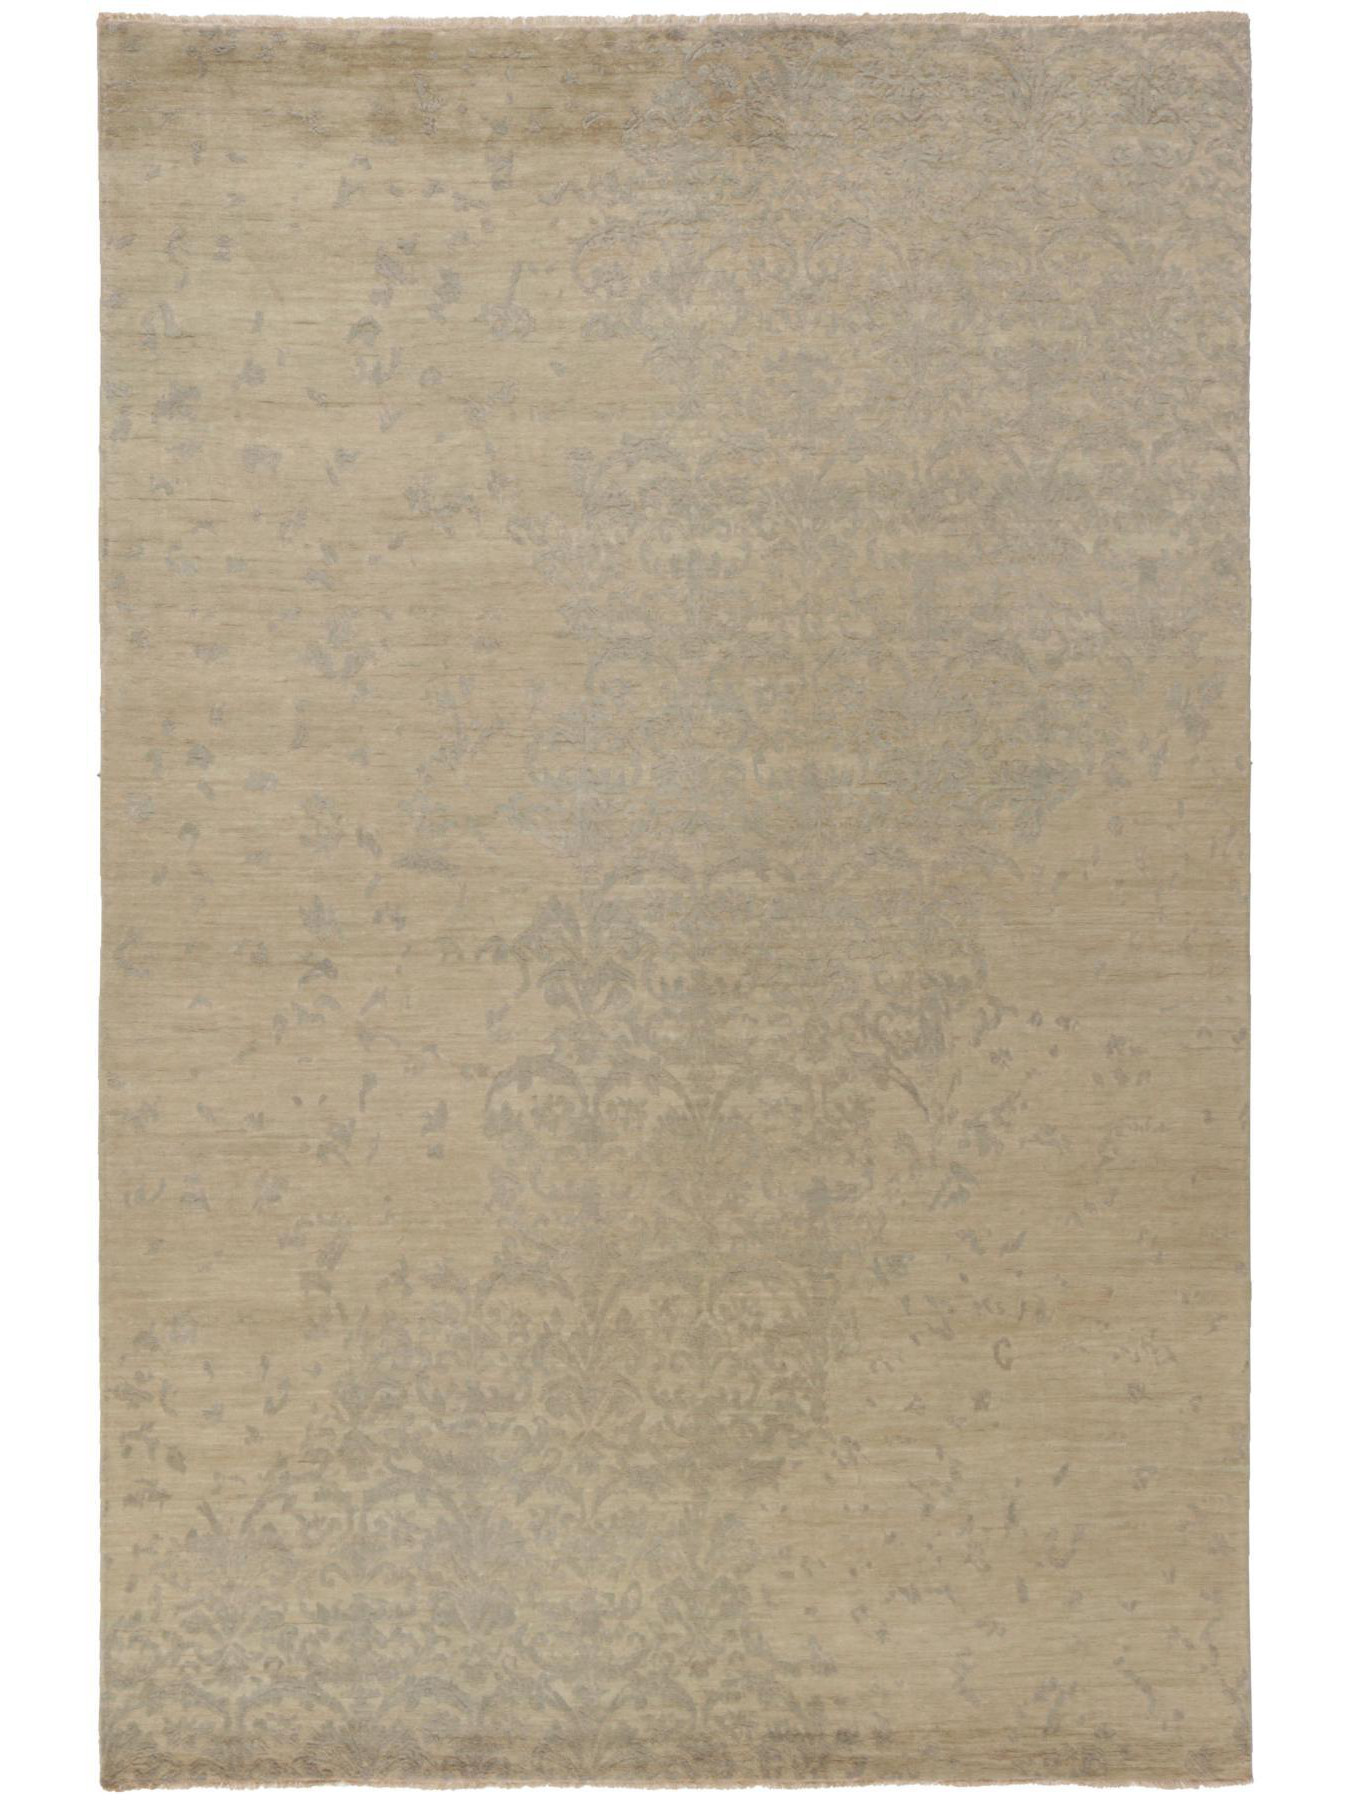 Luxury carpets - Damask-AL-2E B-34/B-33/Green